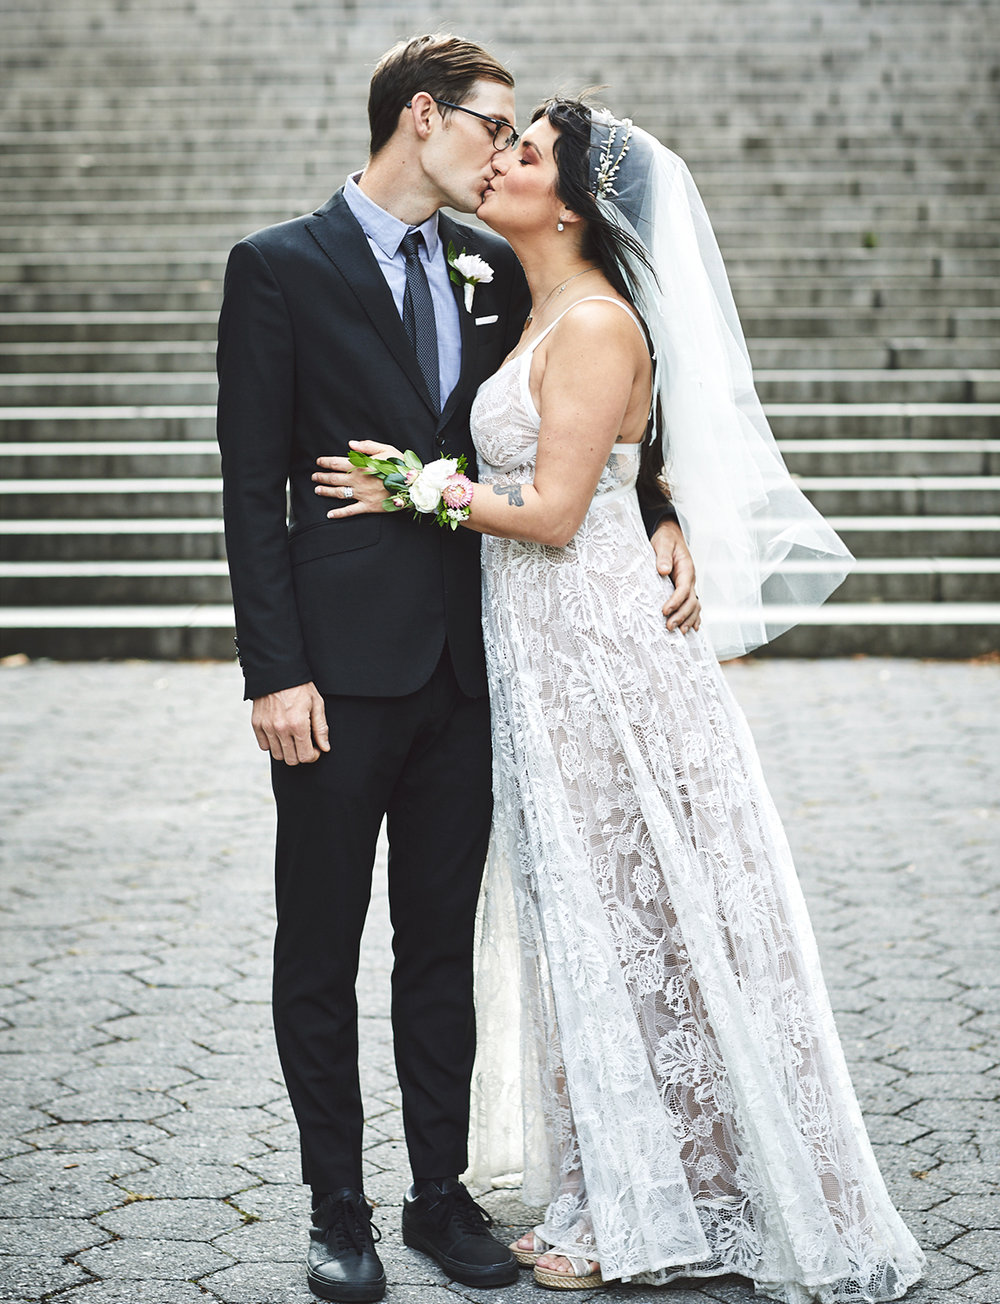 170920_FortGreeneWeddingPhotography_BrooklynWeddingPhotographer_By_BriJohnsonWeddings_0023.jpg